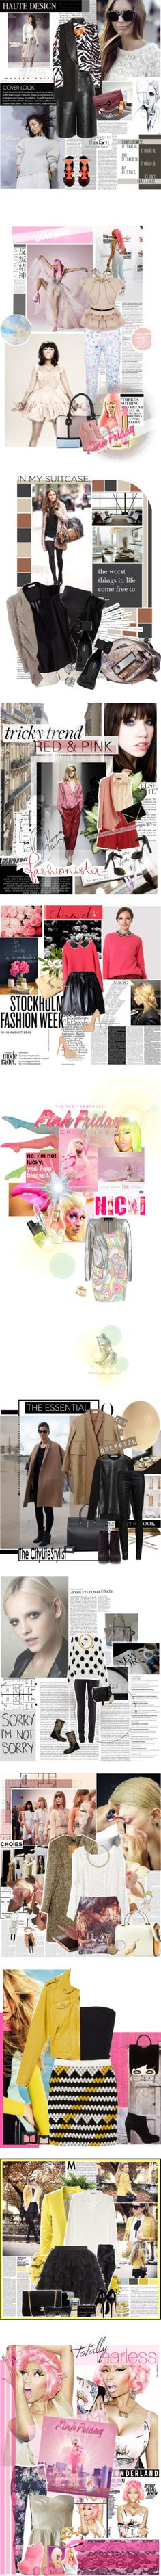 """Top Sets for Nov 22nd, 2012"" by polyvore ❤ liked on Polyvore"